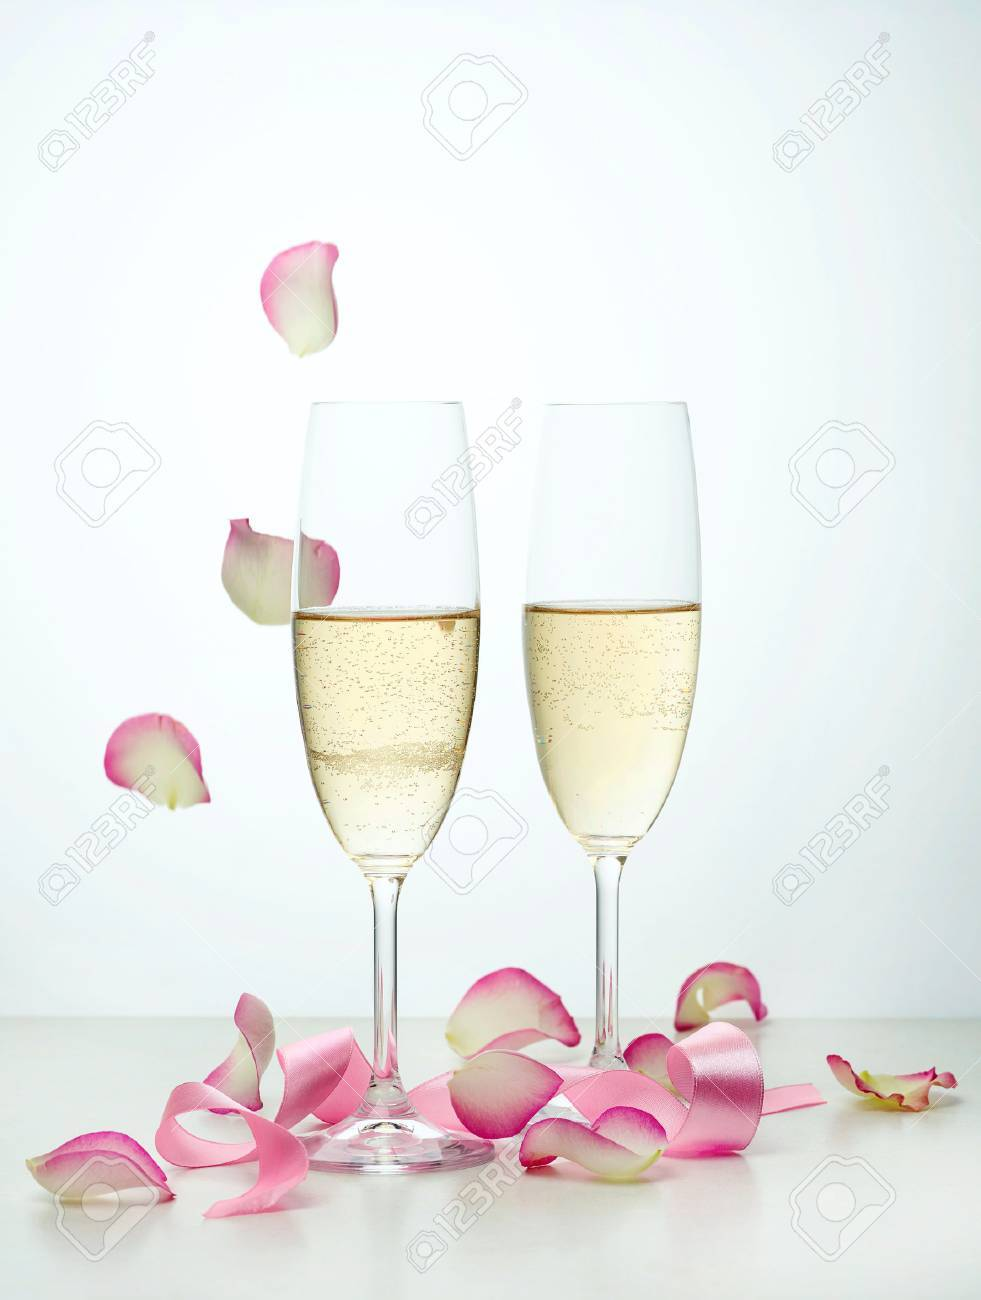 Image result for champagne and pink rose petals